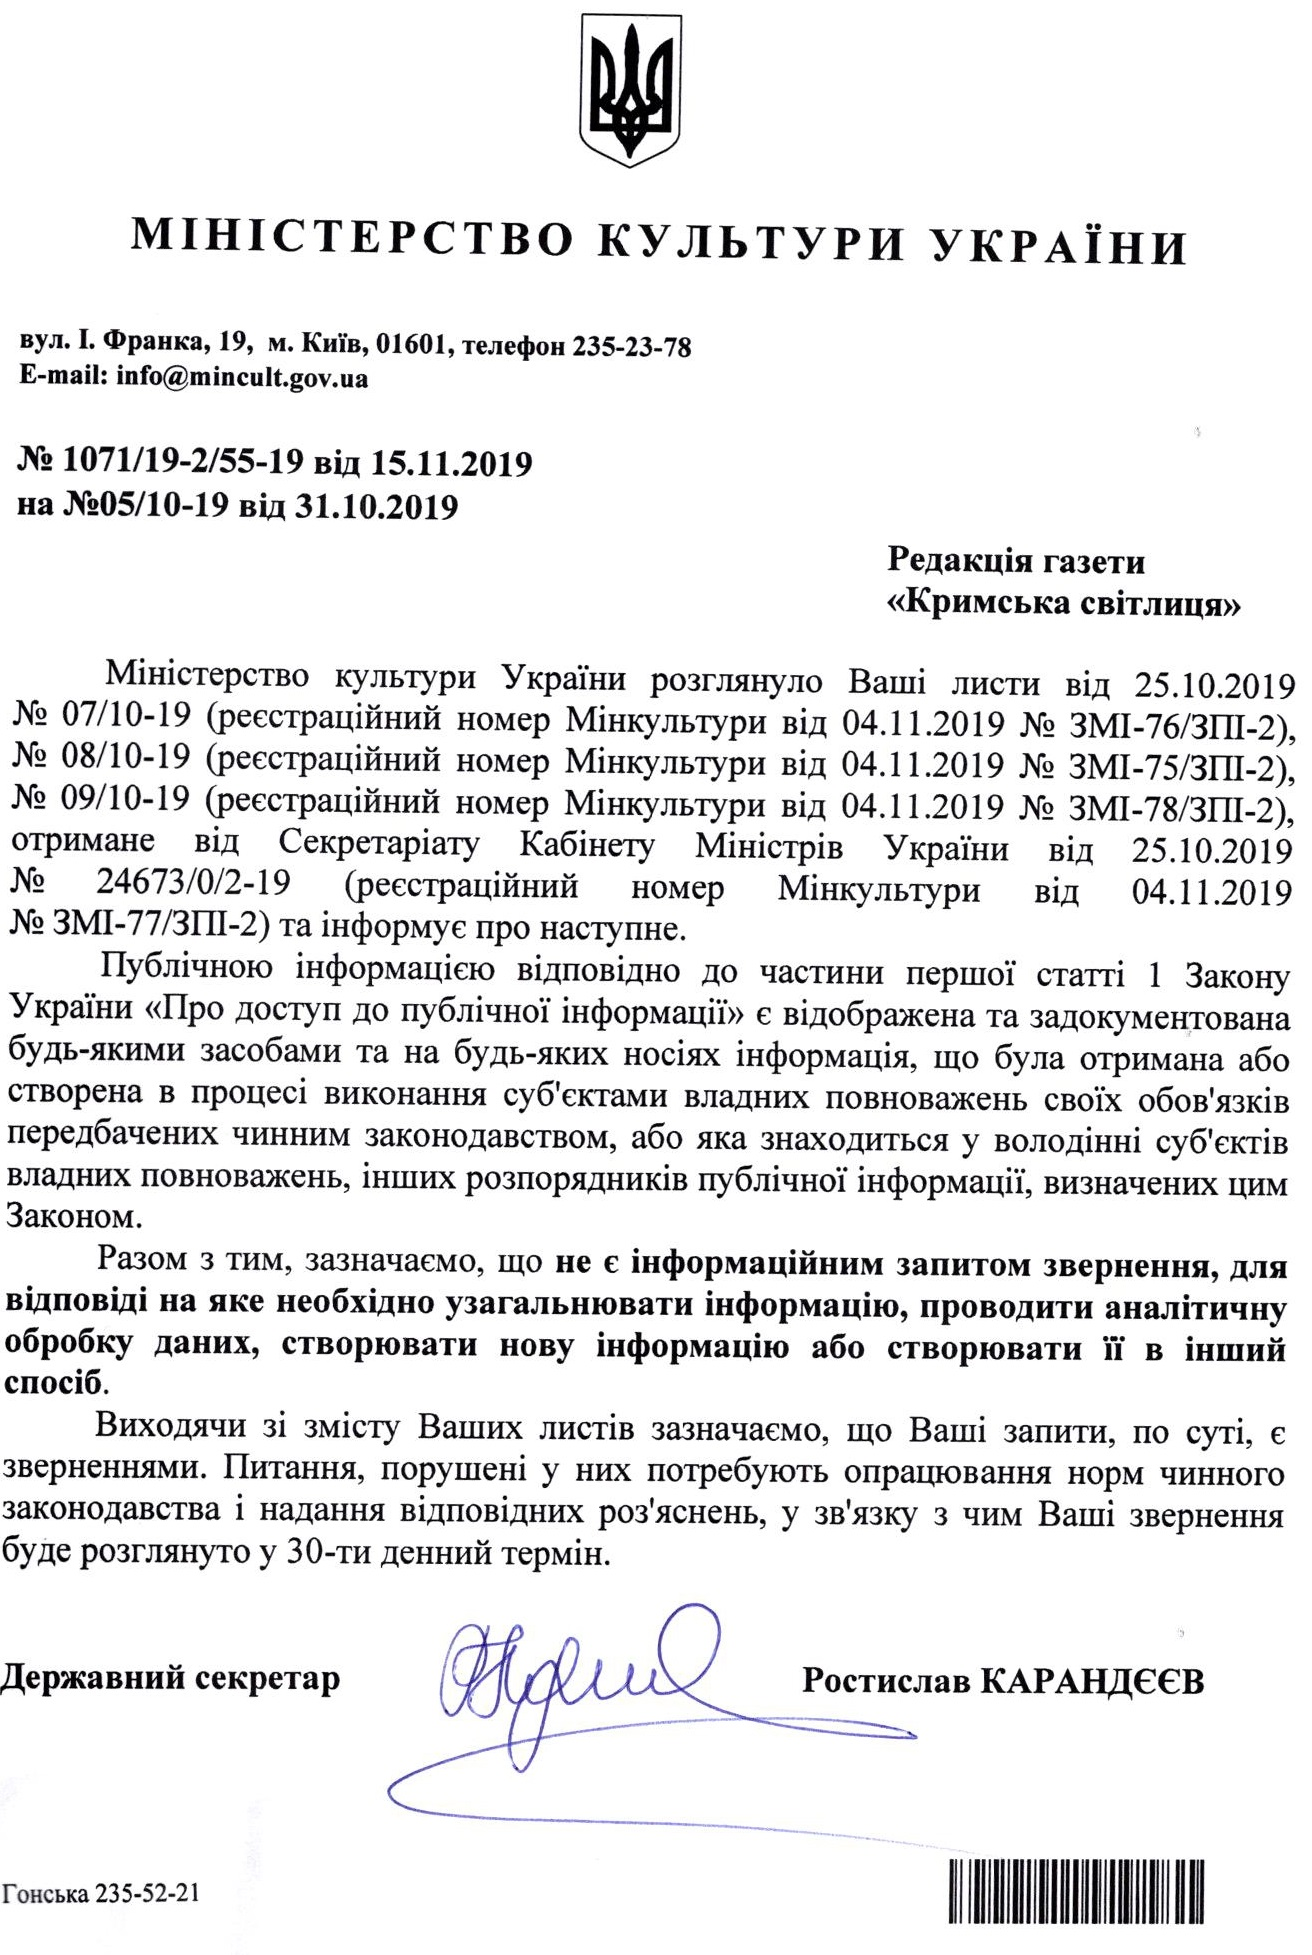 Letter from the Ministry of Culture